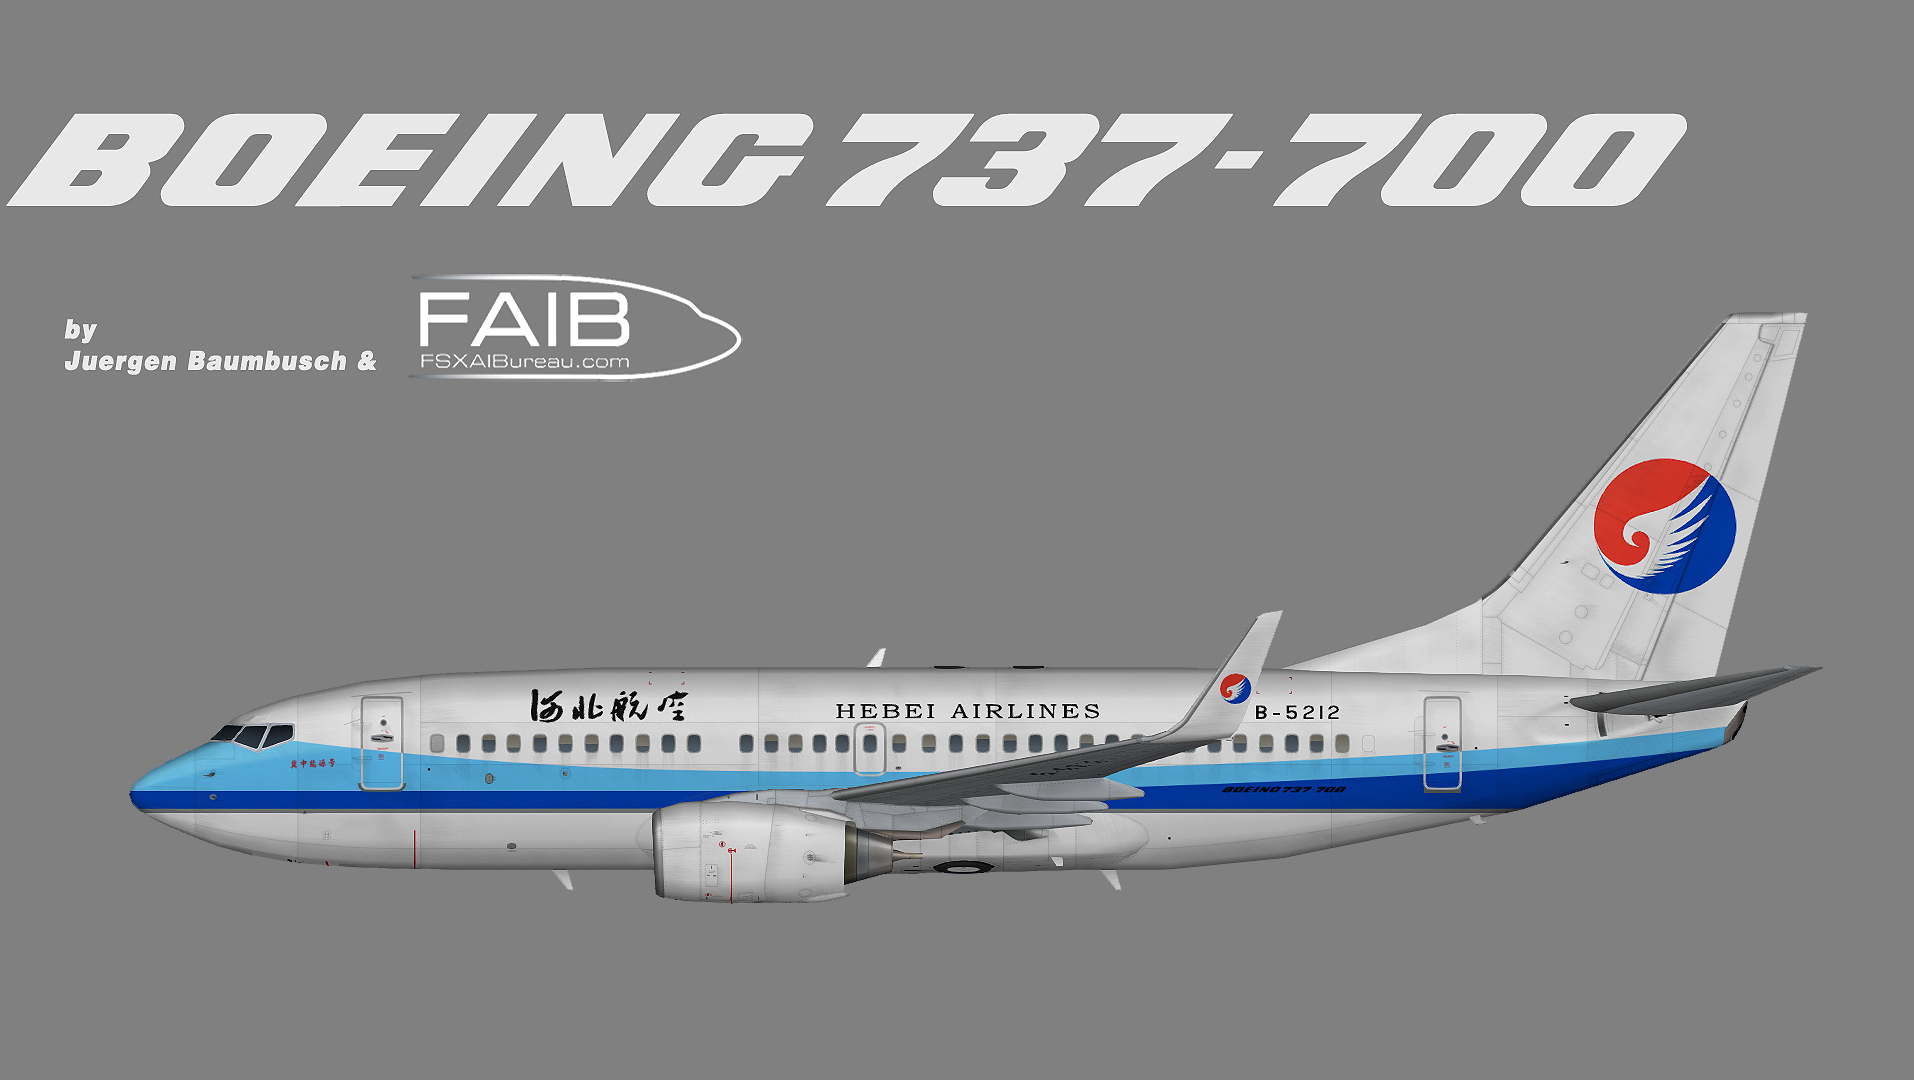 a review of the boeing 700 Get reviews, hours, directions, coupons and more for the boeing company at 700 15th st sw, auburn, wa search for other aircraft equipment, parts & supplies-wholesale & manufacturers in auburn on ypcom.